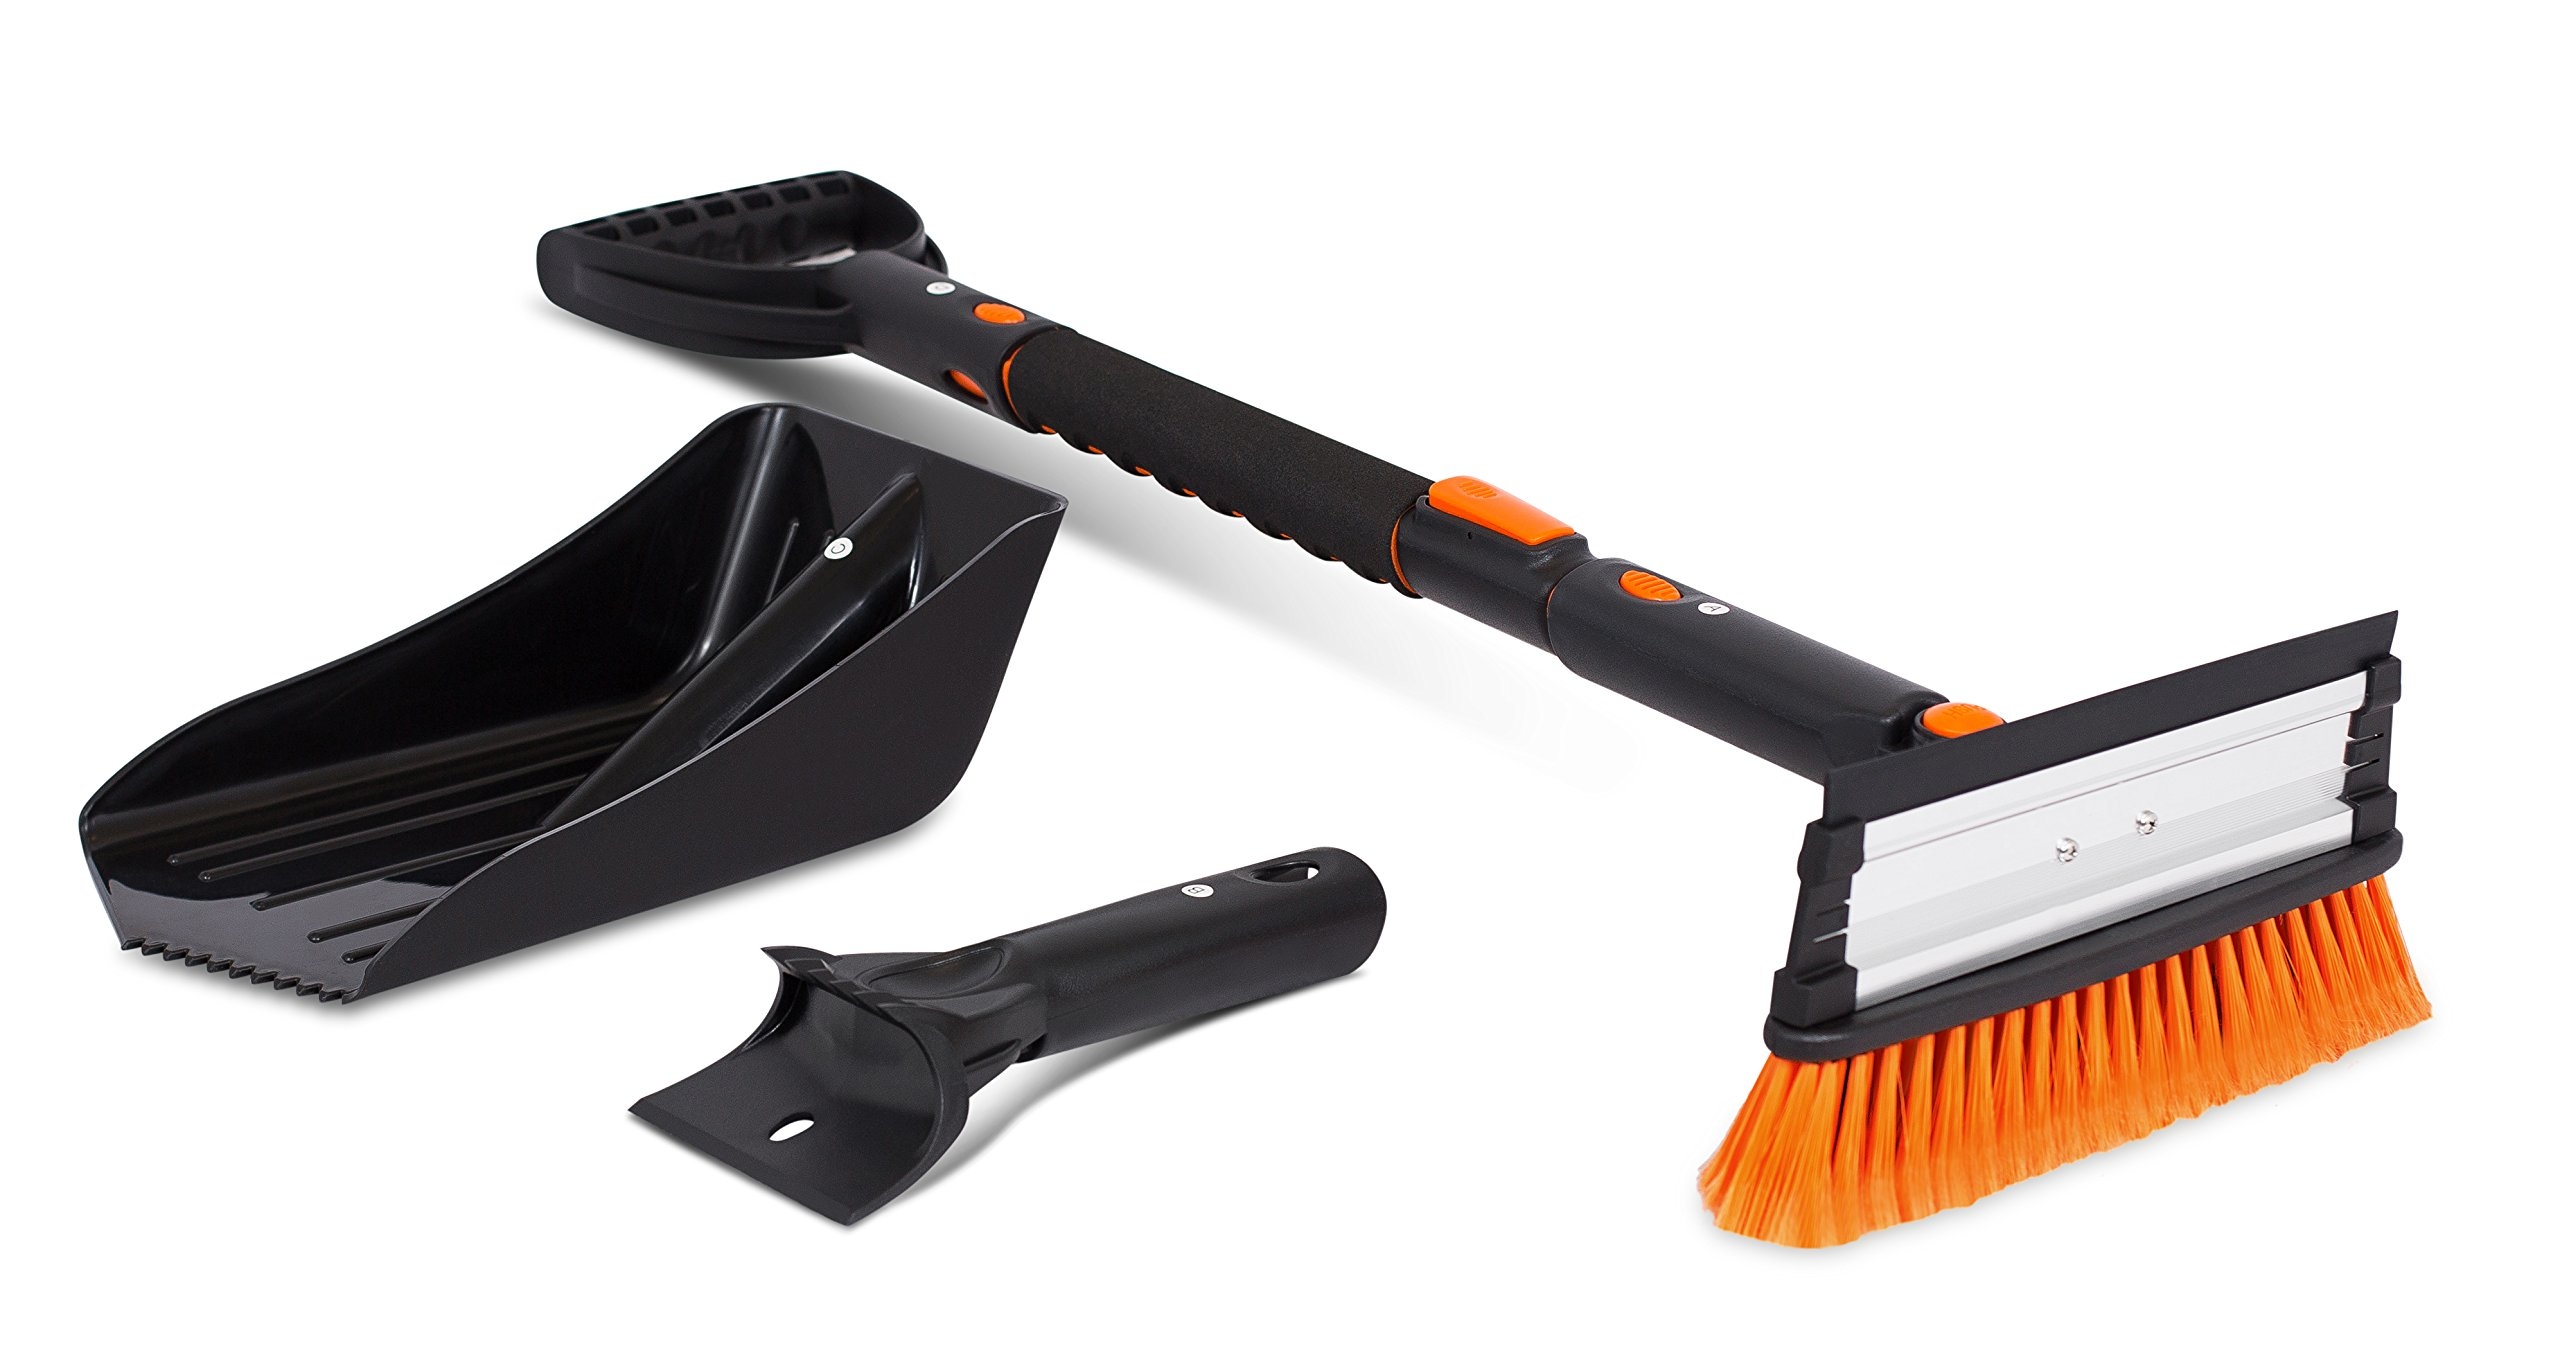 Snow Moover 39'' Extendable Snow Brush with Squeegee, Ice Scraper & Emergency Snow Shovel   Foam Grip   Auto Snow Brush   Auto Ice Scraper   Car Truck SUV